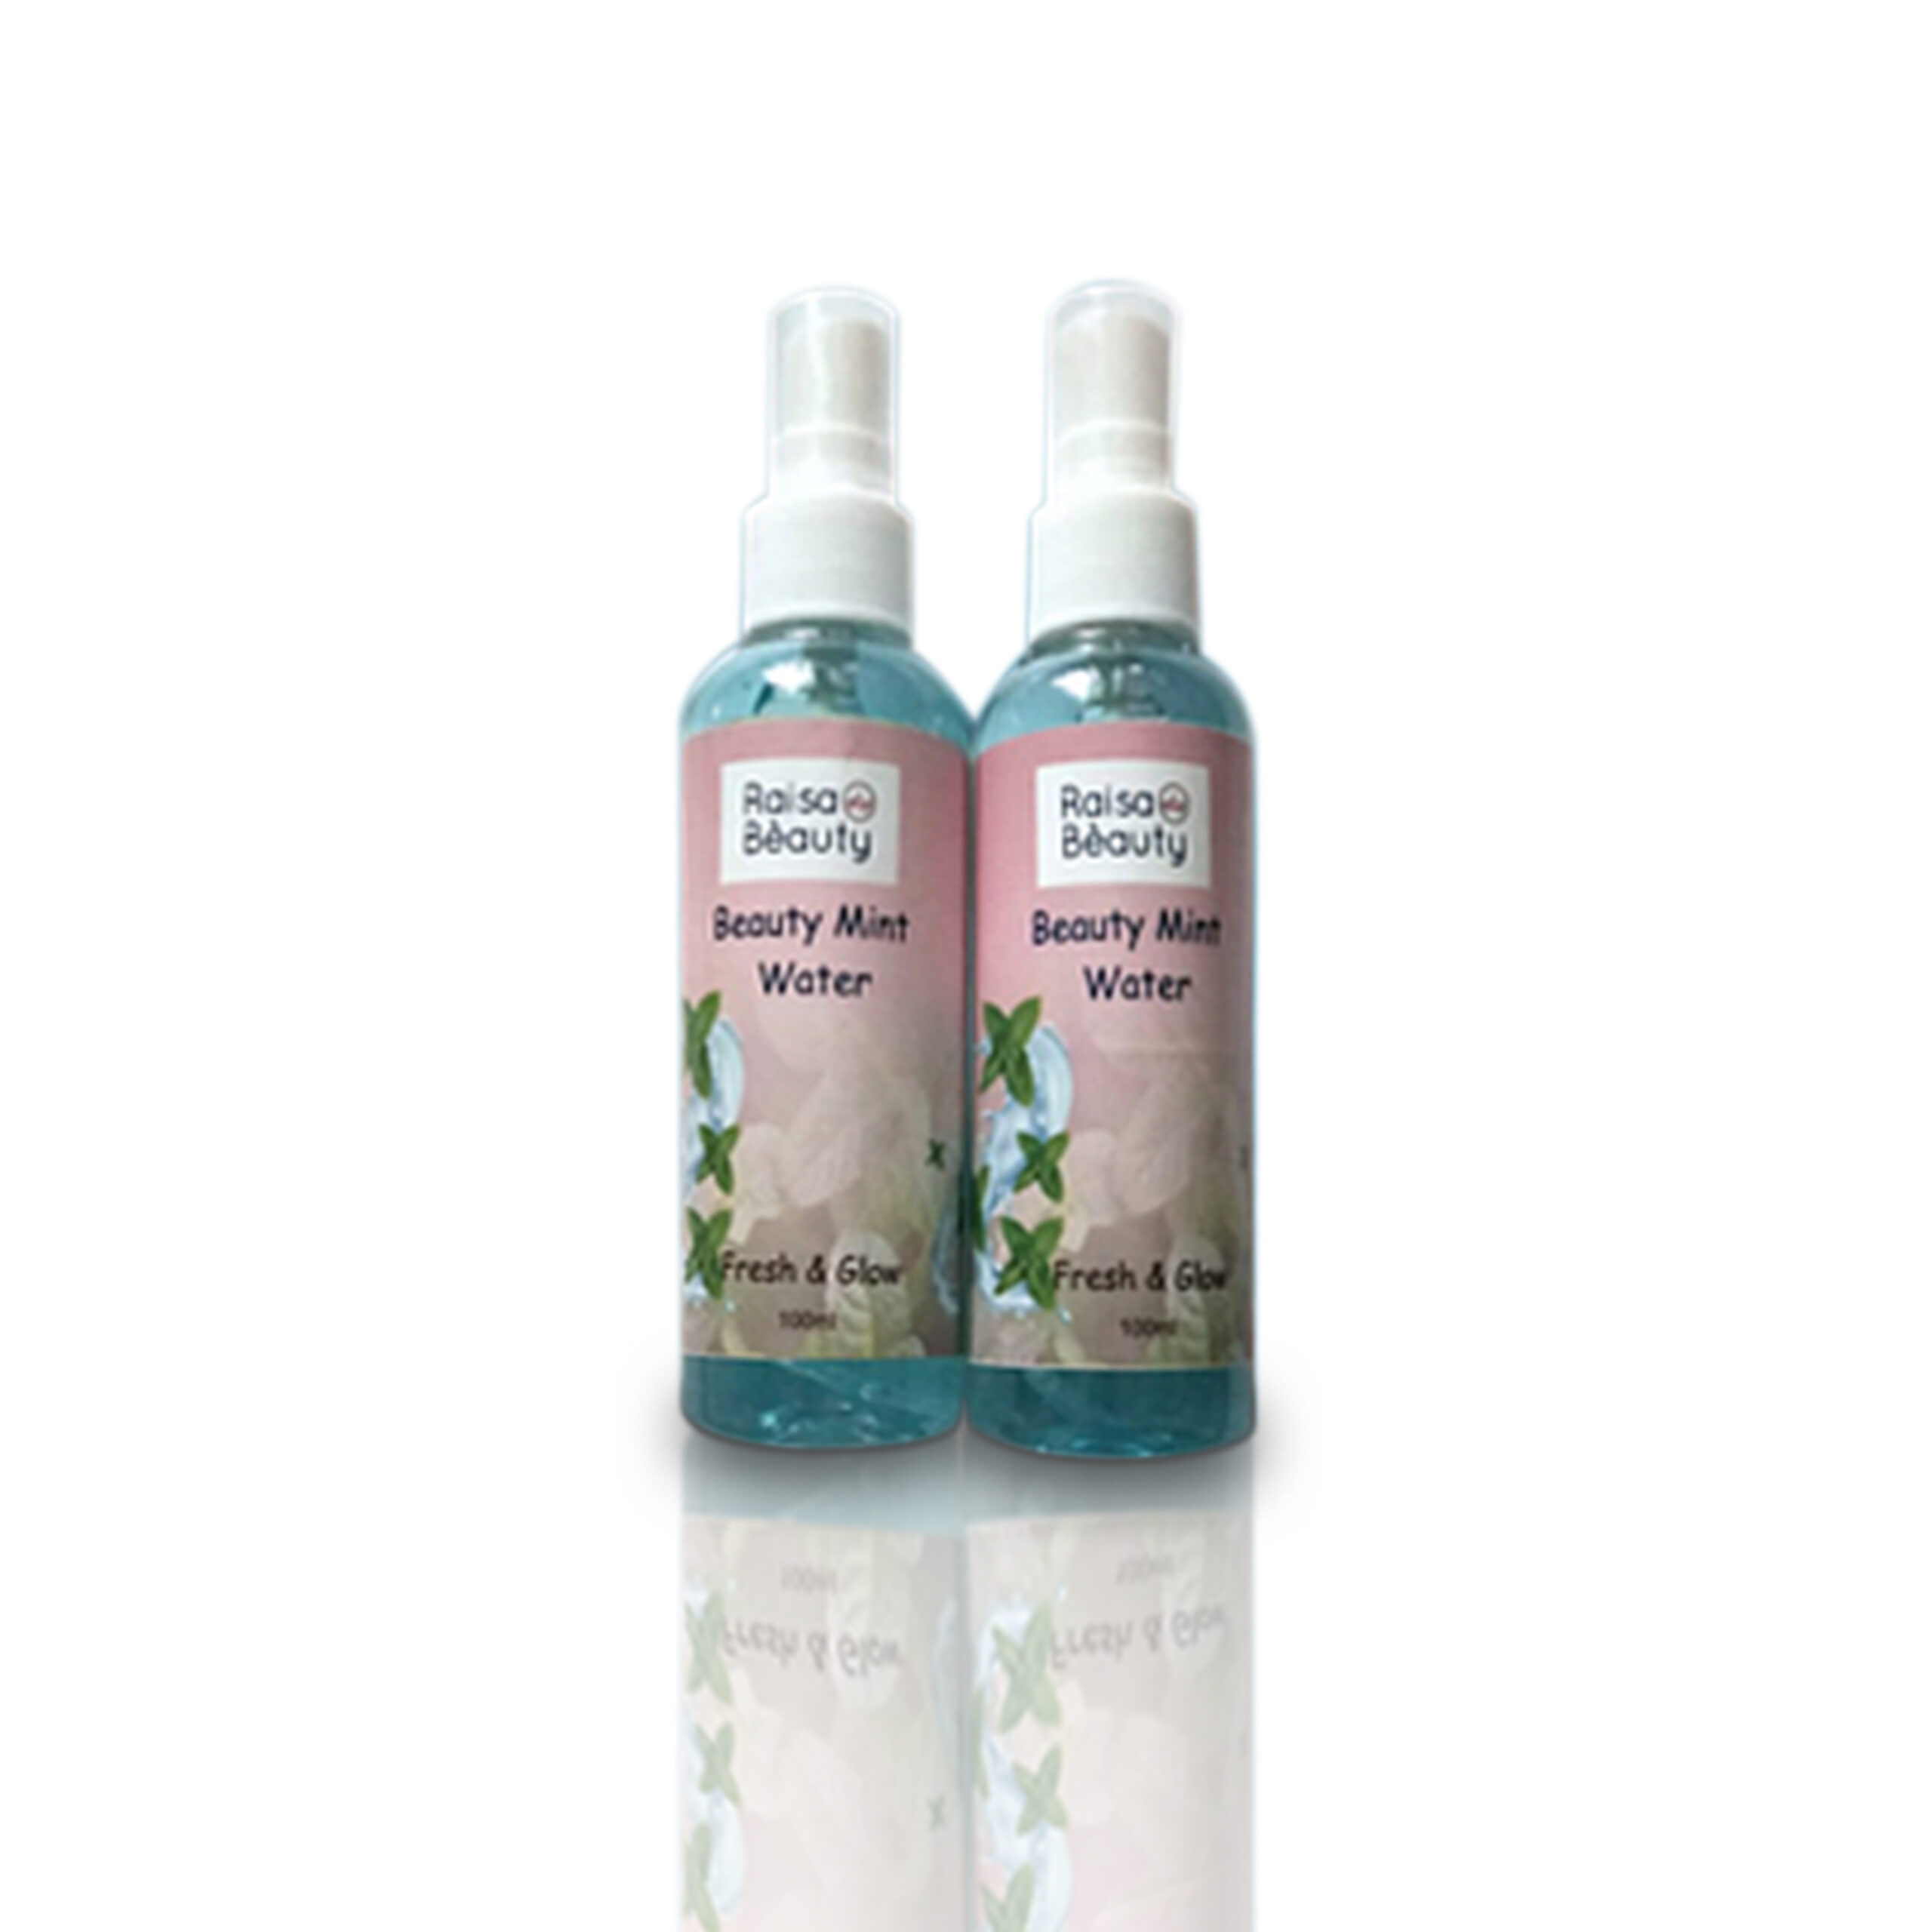 Beauty Mint Water